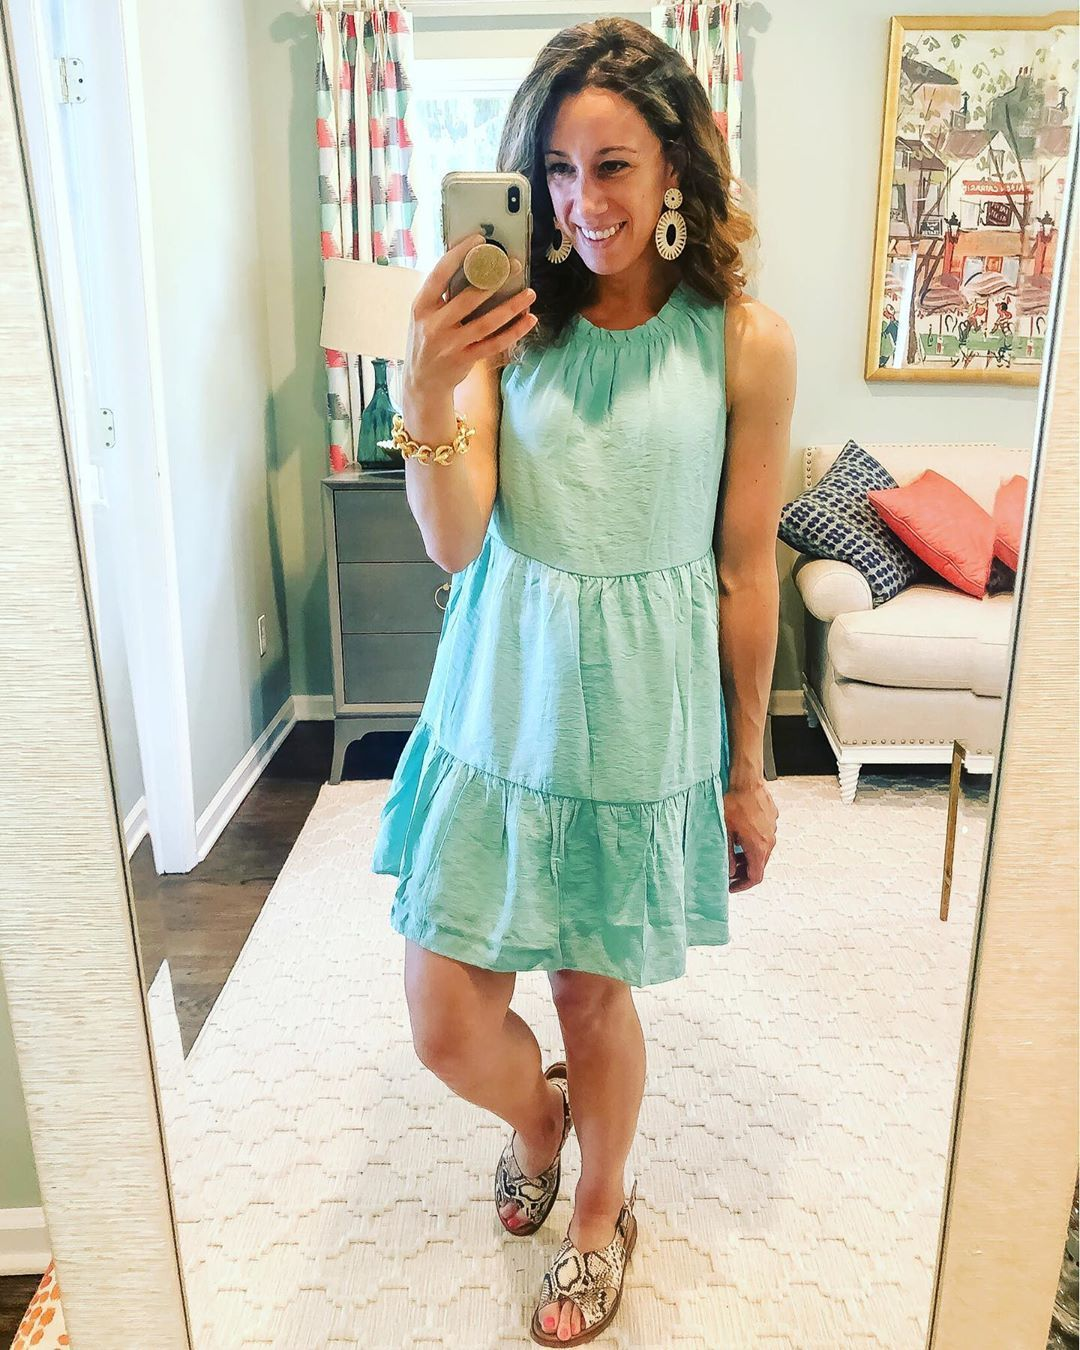 Sarah Attainable Style On Instagram Summer In A Dress I Love The Flowy Fit Of This Casual Swing Dress It S The Prettiest Swing Dress Dresses Style [ 1350 x 1080 Pixel ]